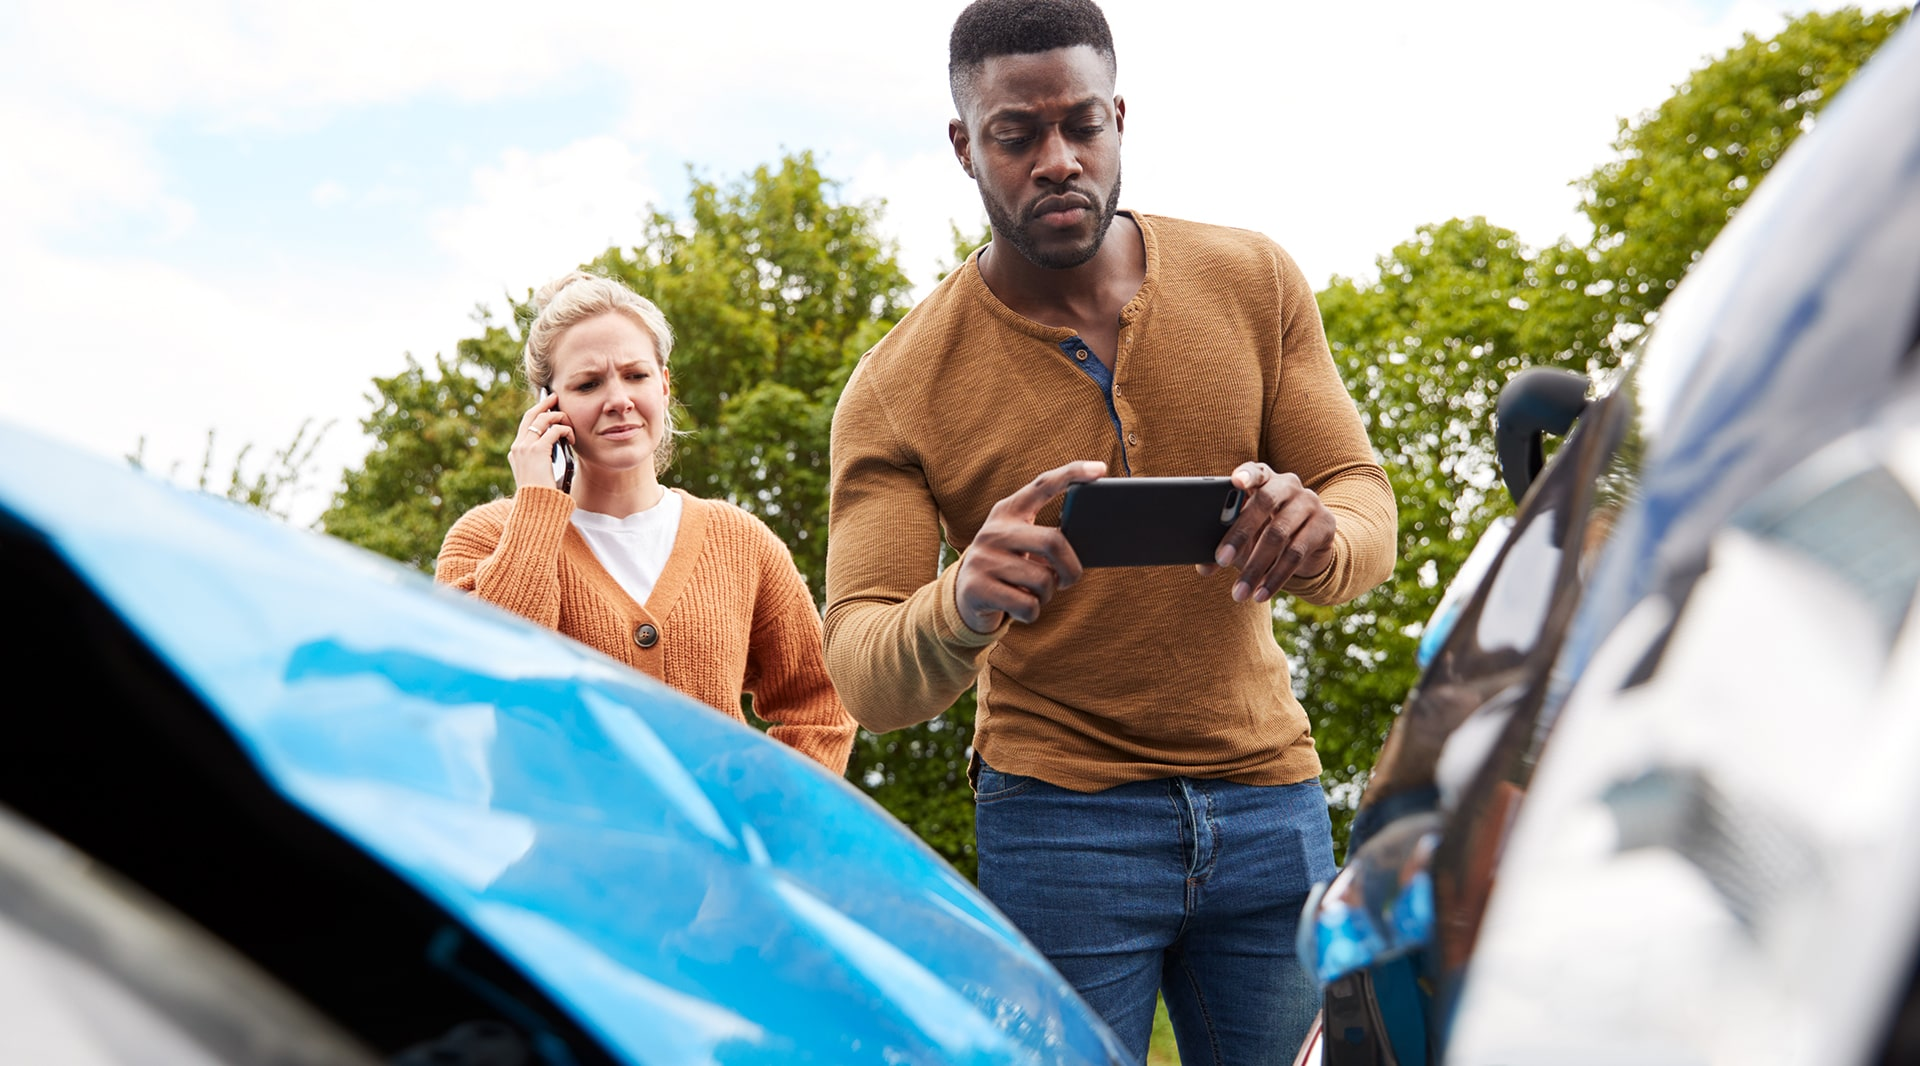 Accidents Happen - What To Do After a Car Accident landscape